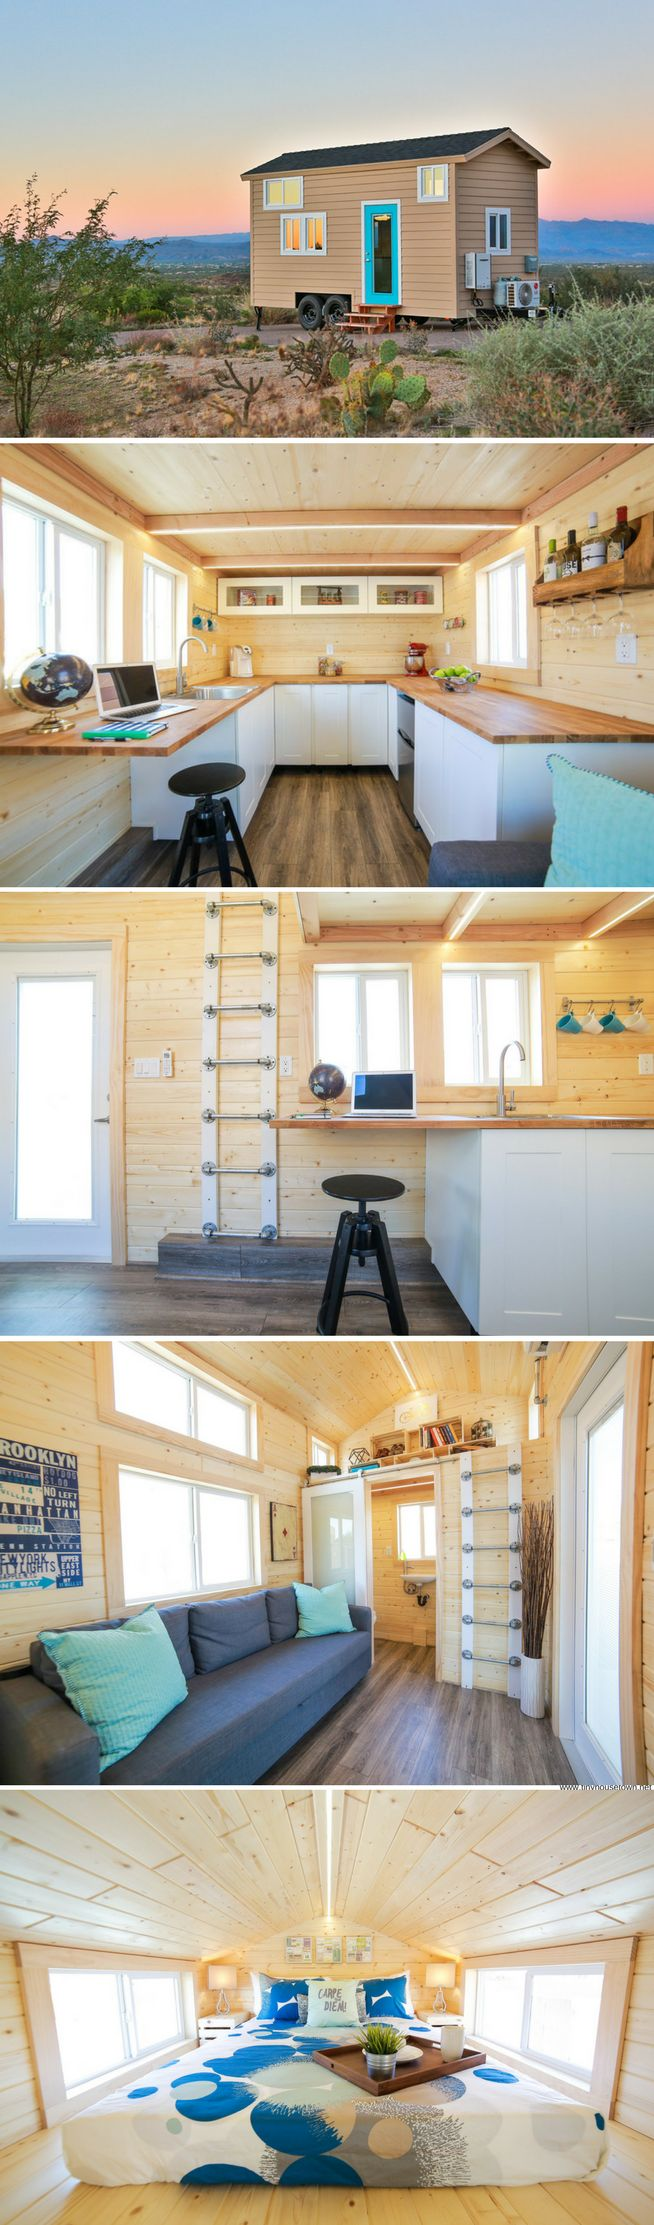 The Mansion Jr from Uncharted Tiny Homes (230 sq ft)